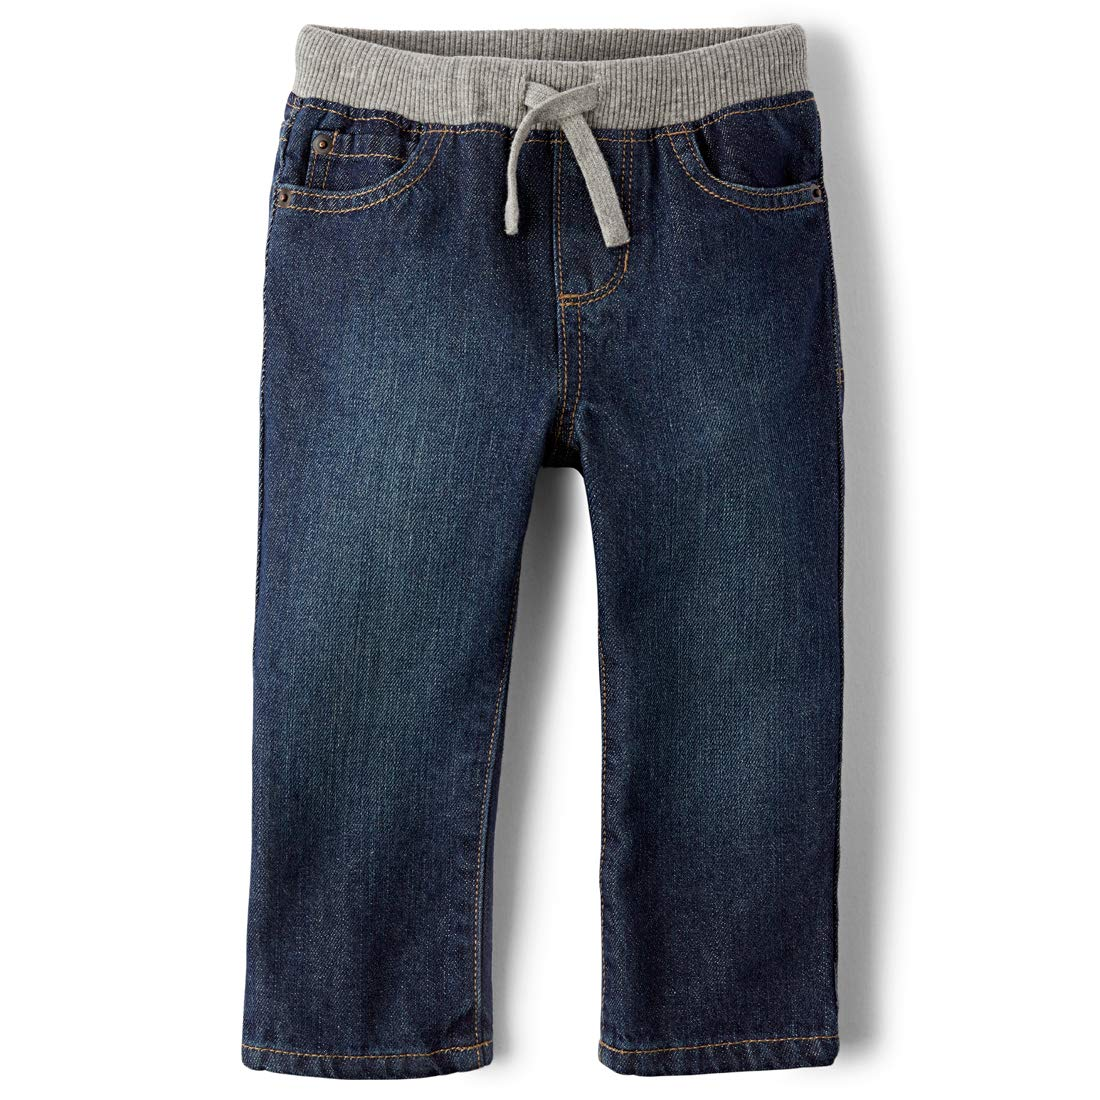 THE CHILDREN'S PLACE Little Boys and Toddler Pull-On Jean, Liberty Blue, 4T by The Children's Place